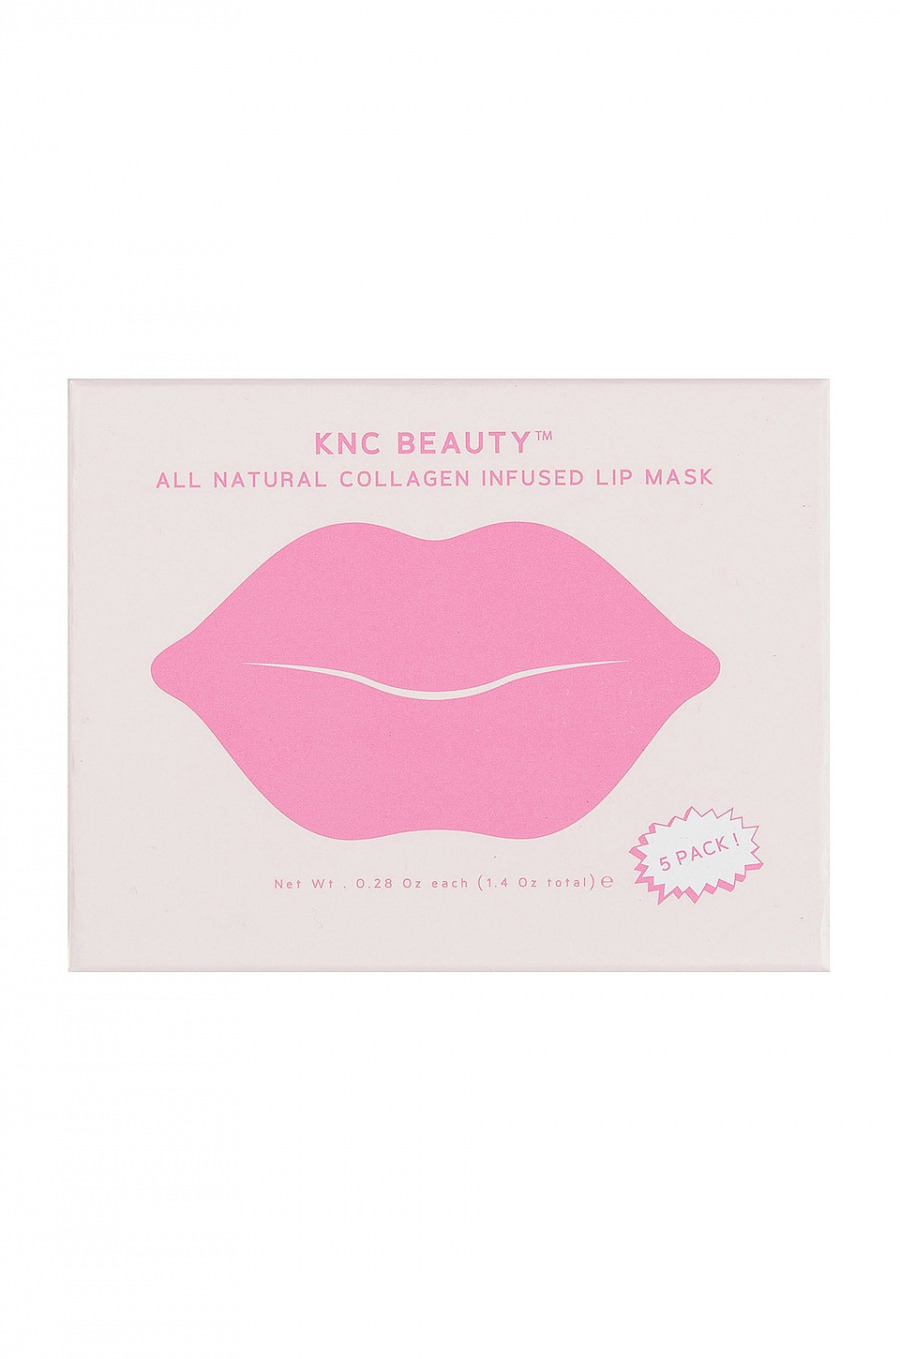 KNC Beauty  Sephora All Natural Collagen Infused Lip Mask